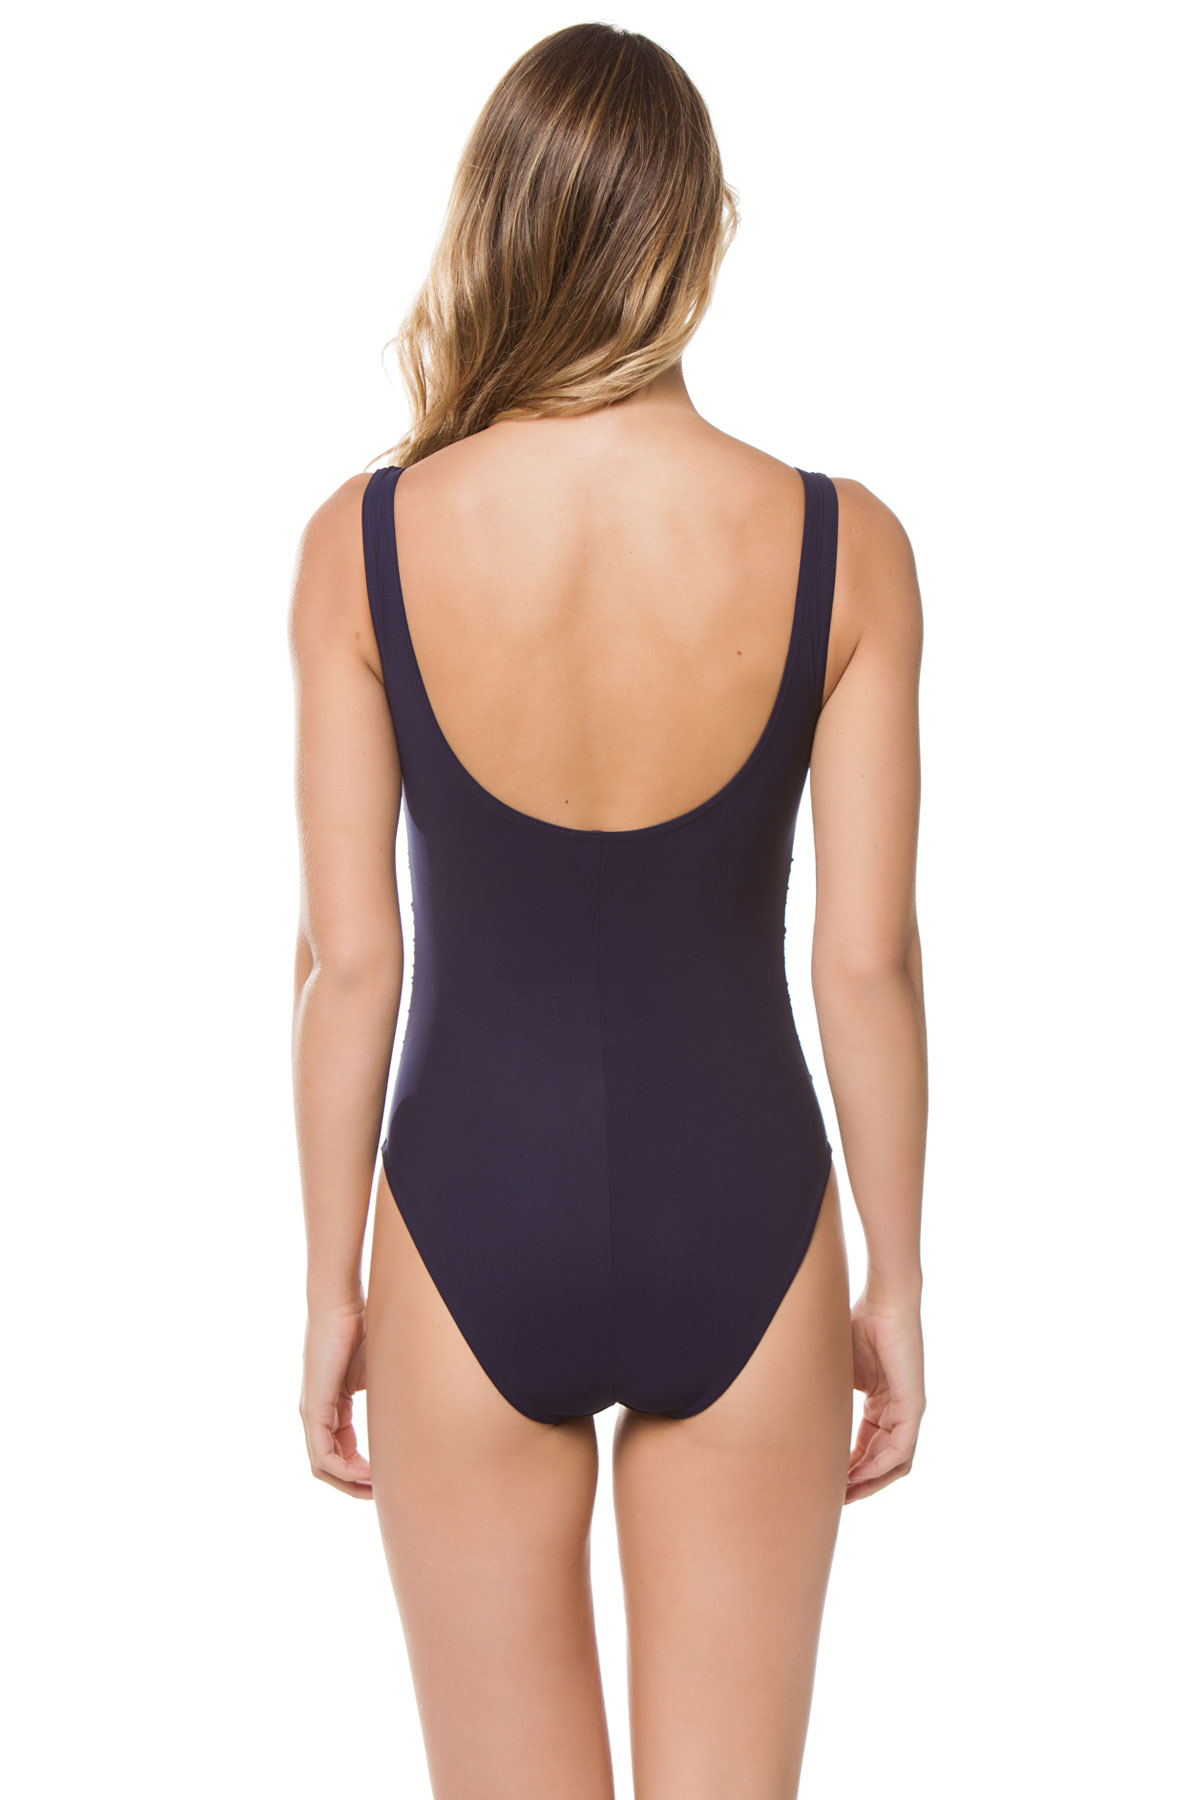 Shirred Over The Shoulder One Piece Swimsuit - Navy 2